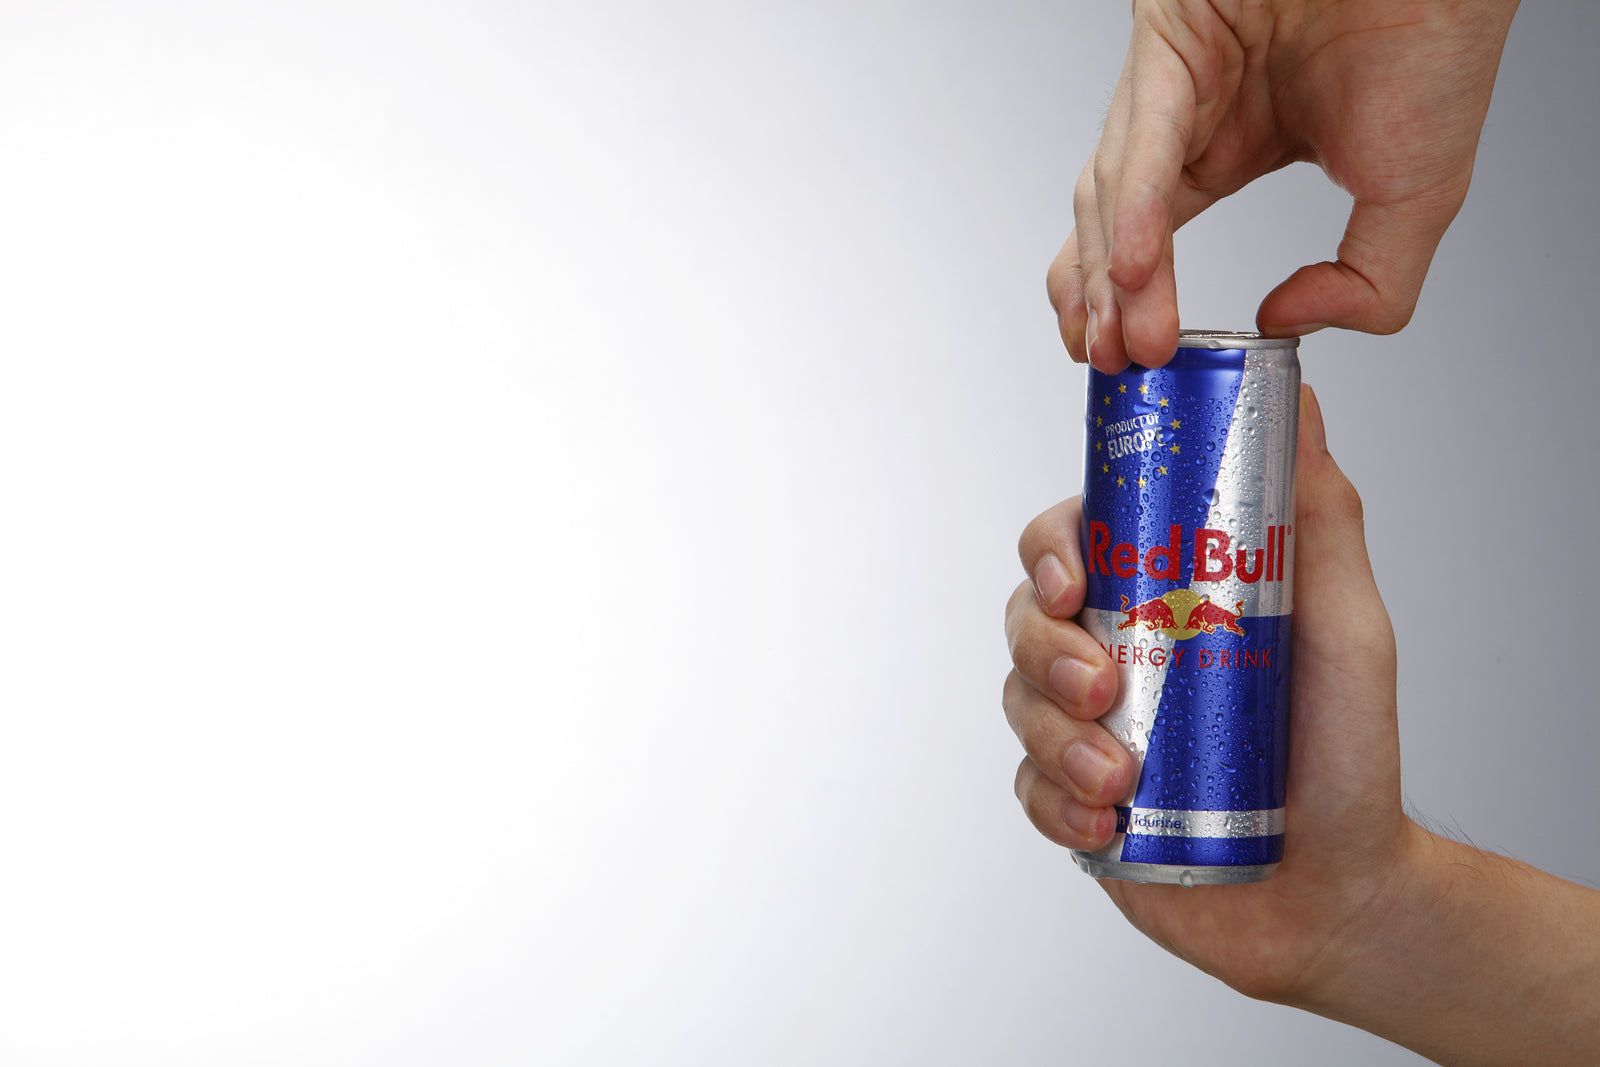 Will Drinking Red Bull Help You Play With More Energy? (Here's The Truth)